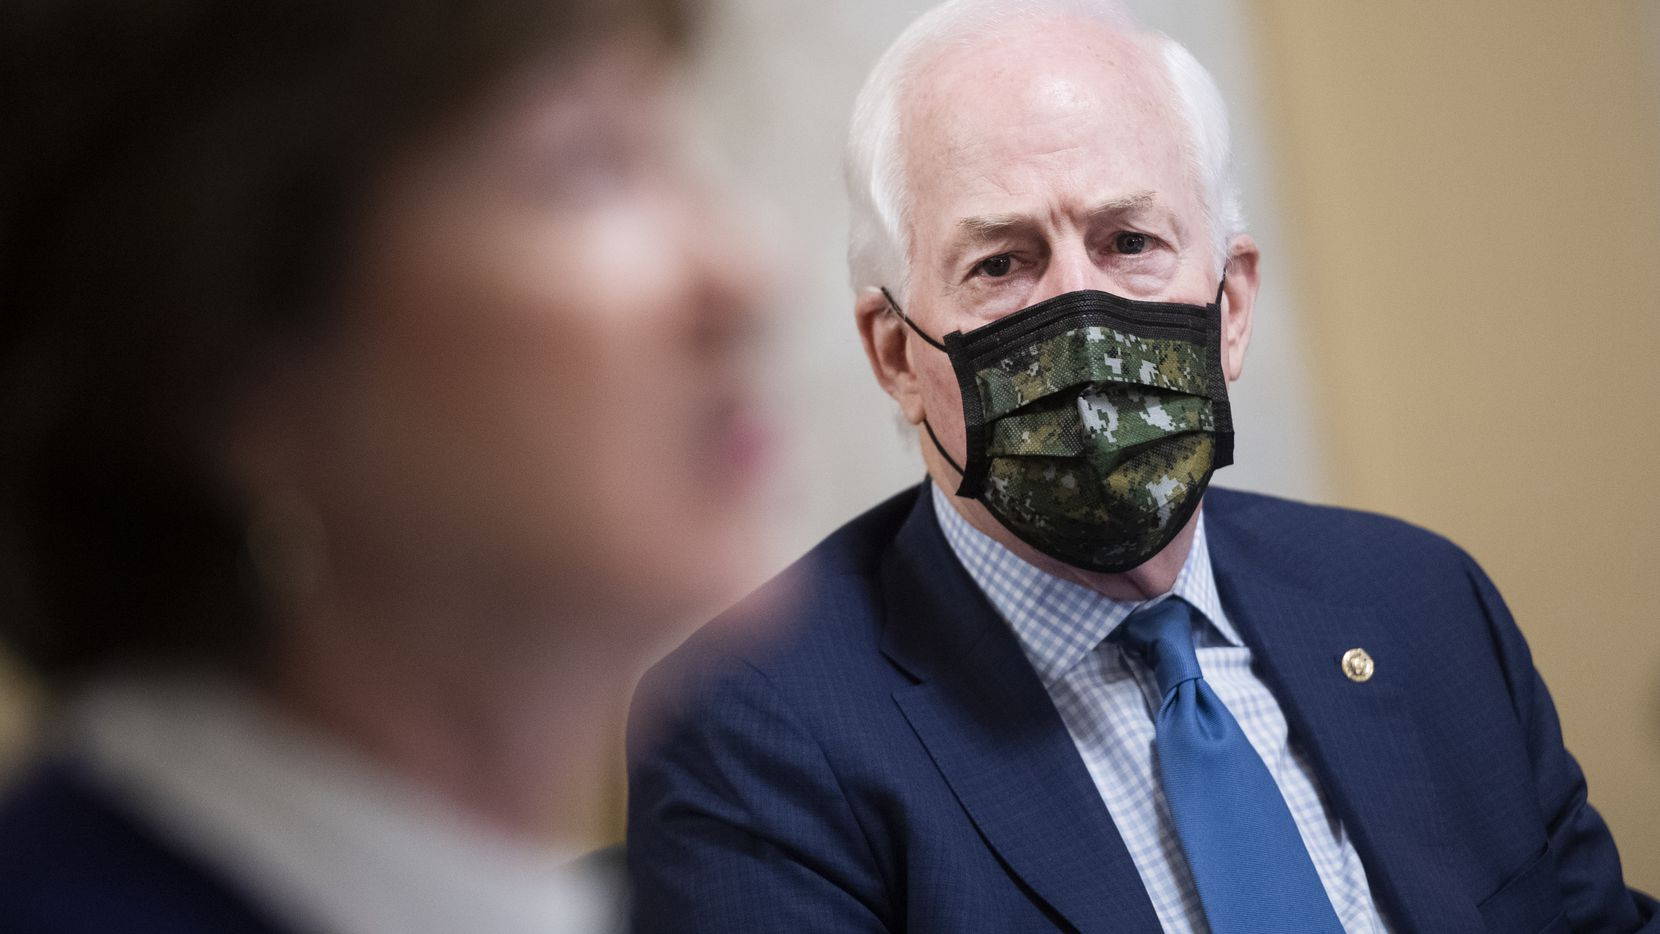 Sen. John Cornyn listens during a Senate Rules Committee meeting on his National Museum of the American Latino Act and other bills on Nov. 17, 2020.